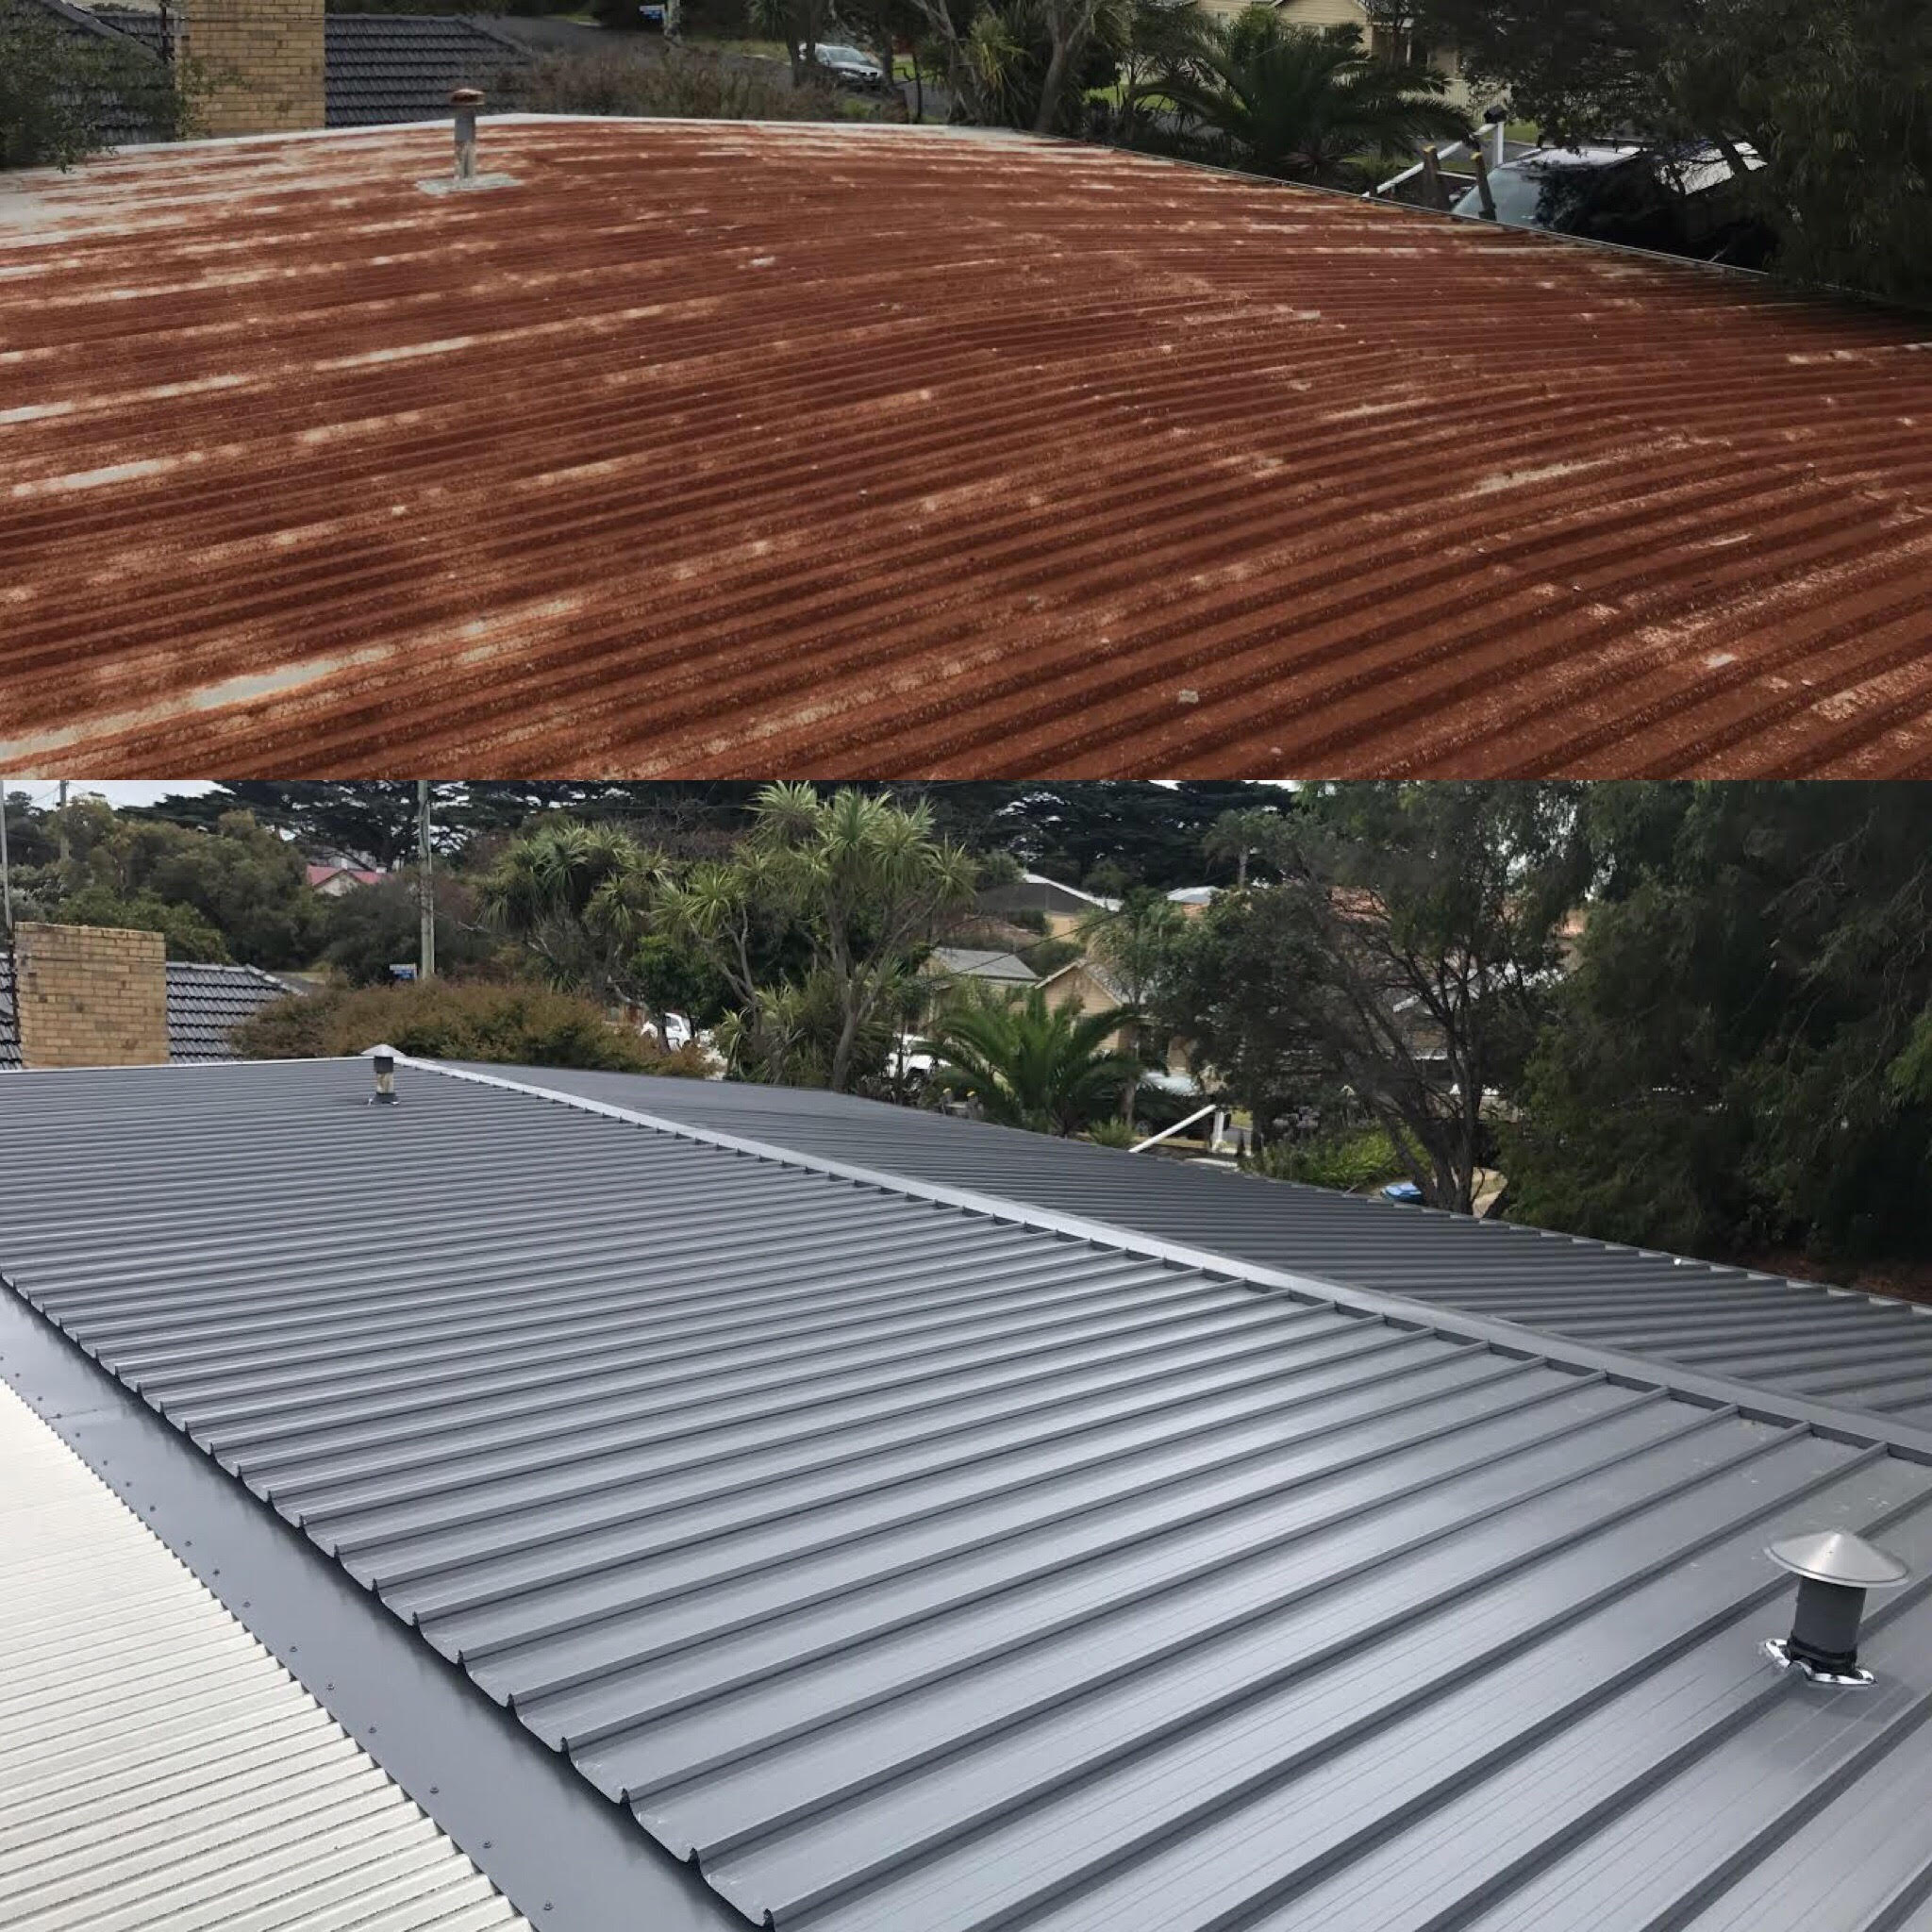 Re-Roofs - If you have a pre-existing tin, tile or asbestos roof, either pitched or flat that appears weathered or outdated and are wanting to give your home that 'new COLORBOND®-look', the team at Metal Roofing Installations are experts in assessing your property and making recommendations accordingly to ensure your roof is of the highest quality whilst being energy efficient, sustainable and durable.